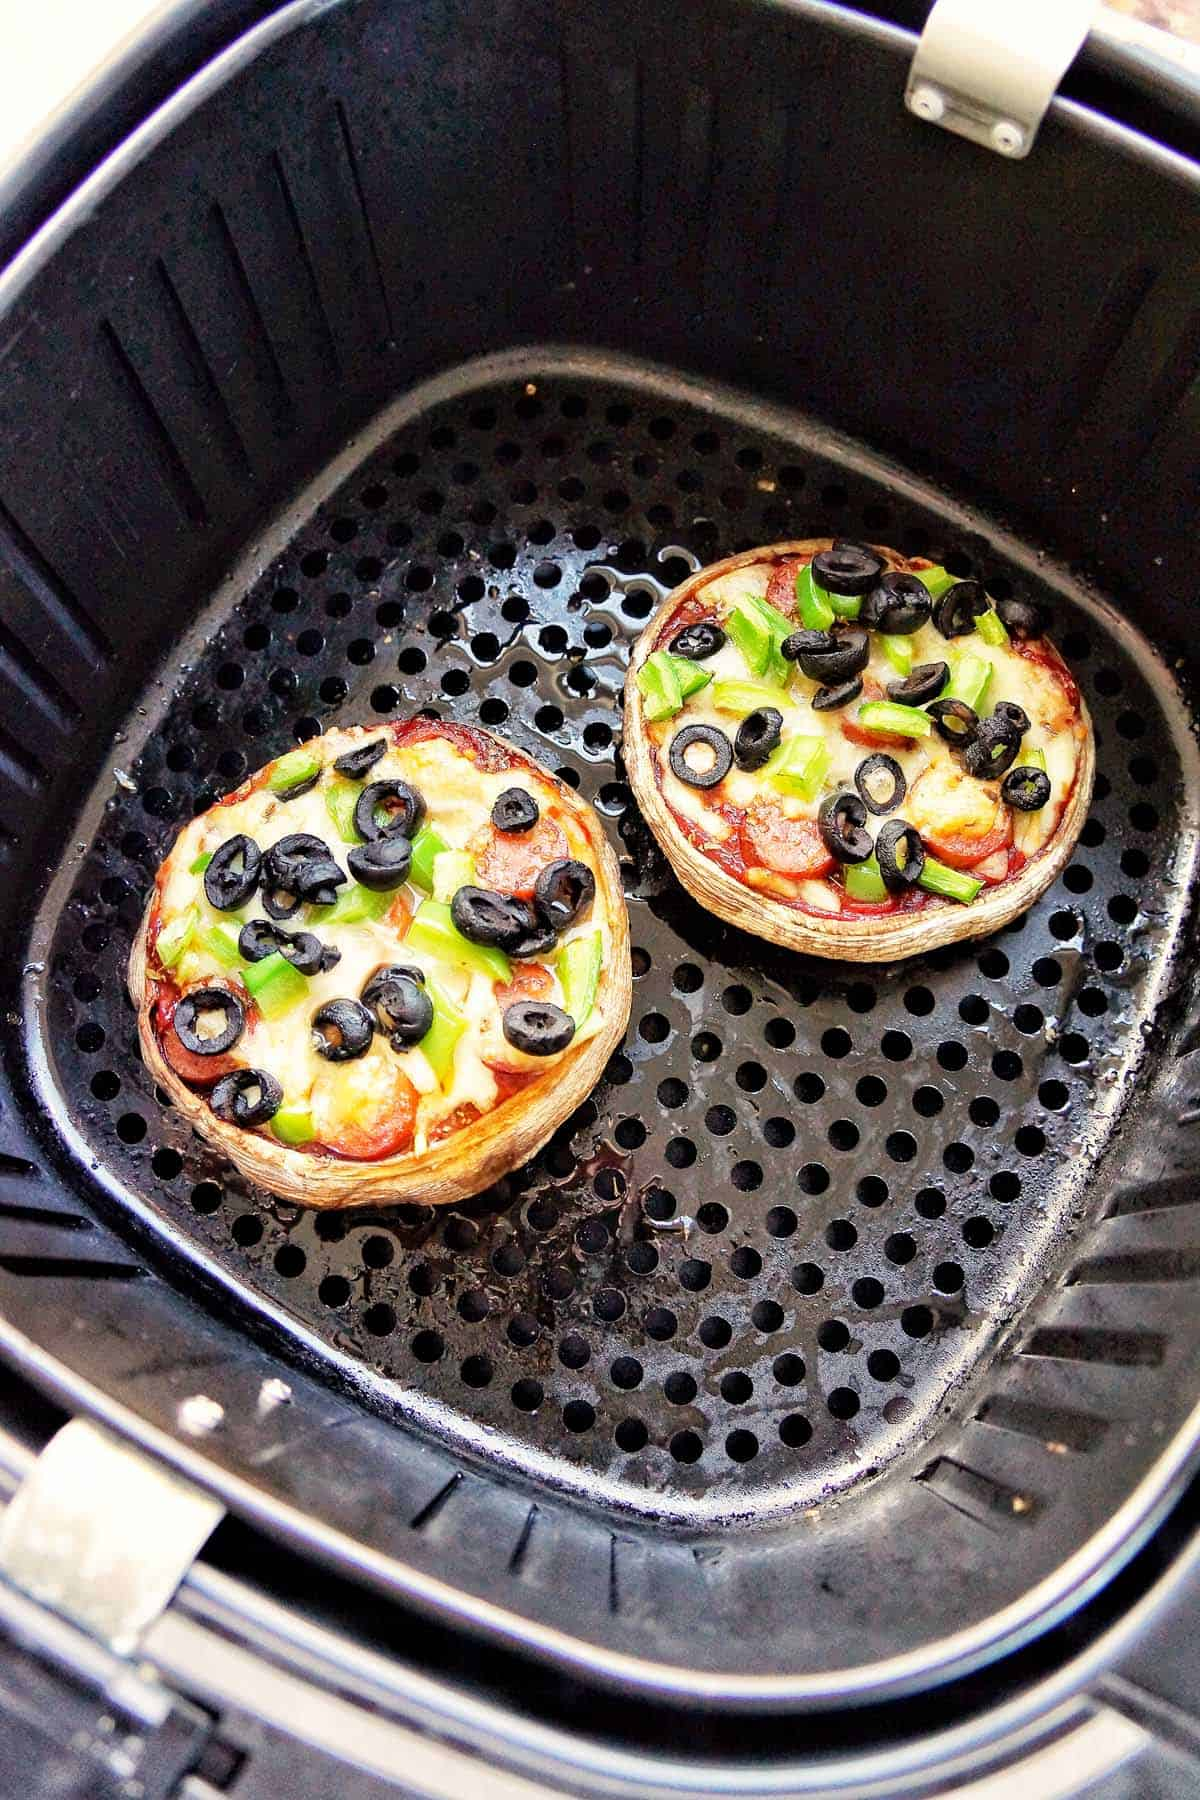 Cooked Portobello Pizzas in Air Fryer basket